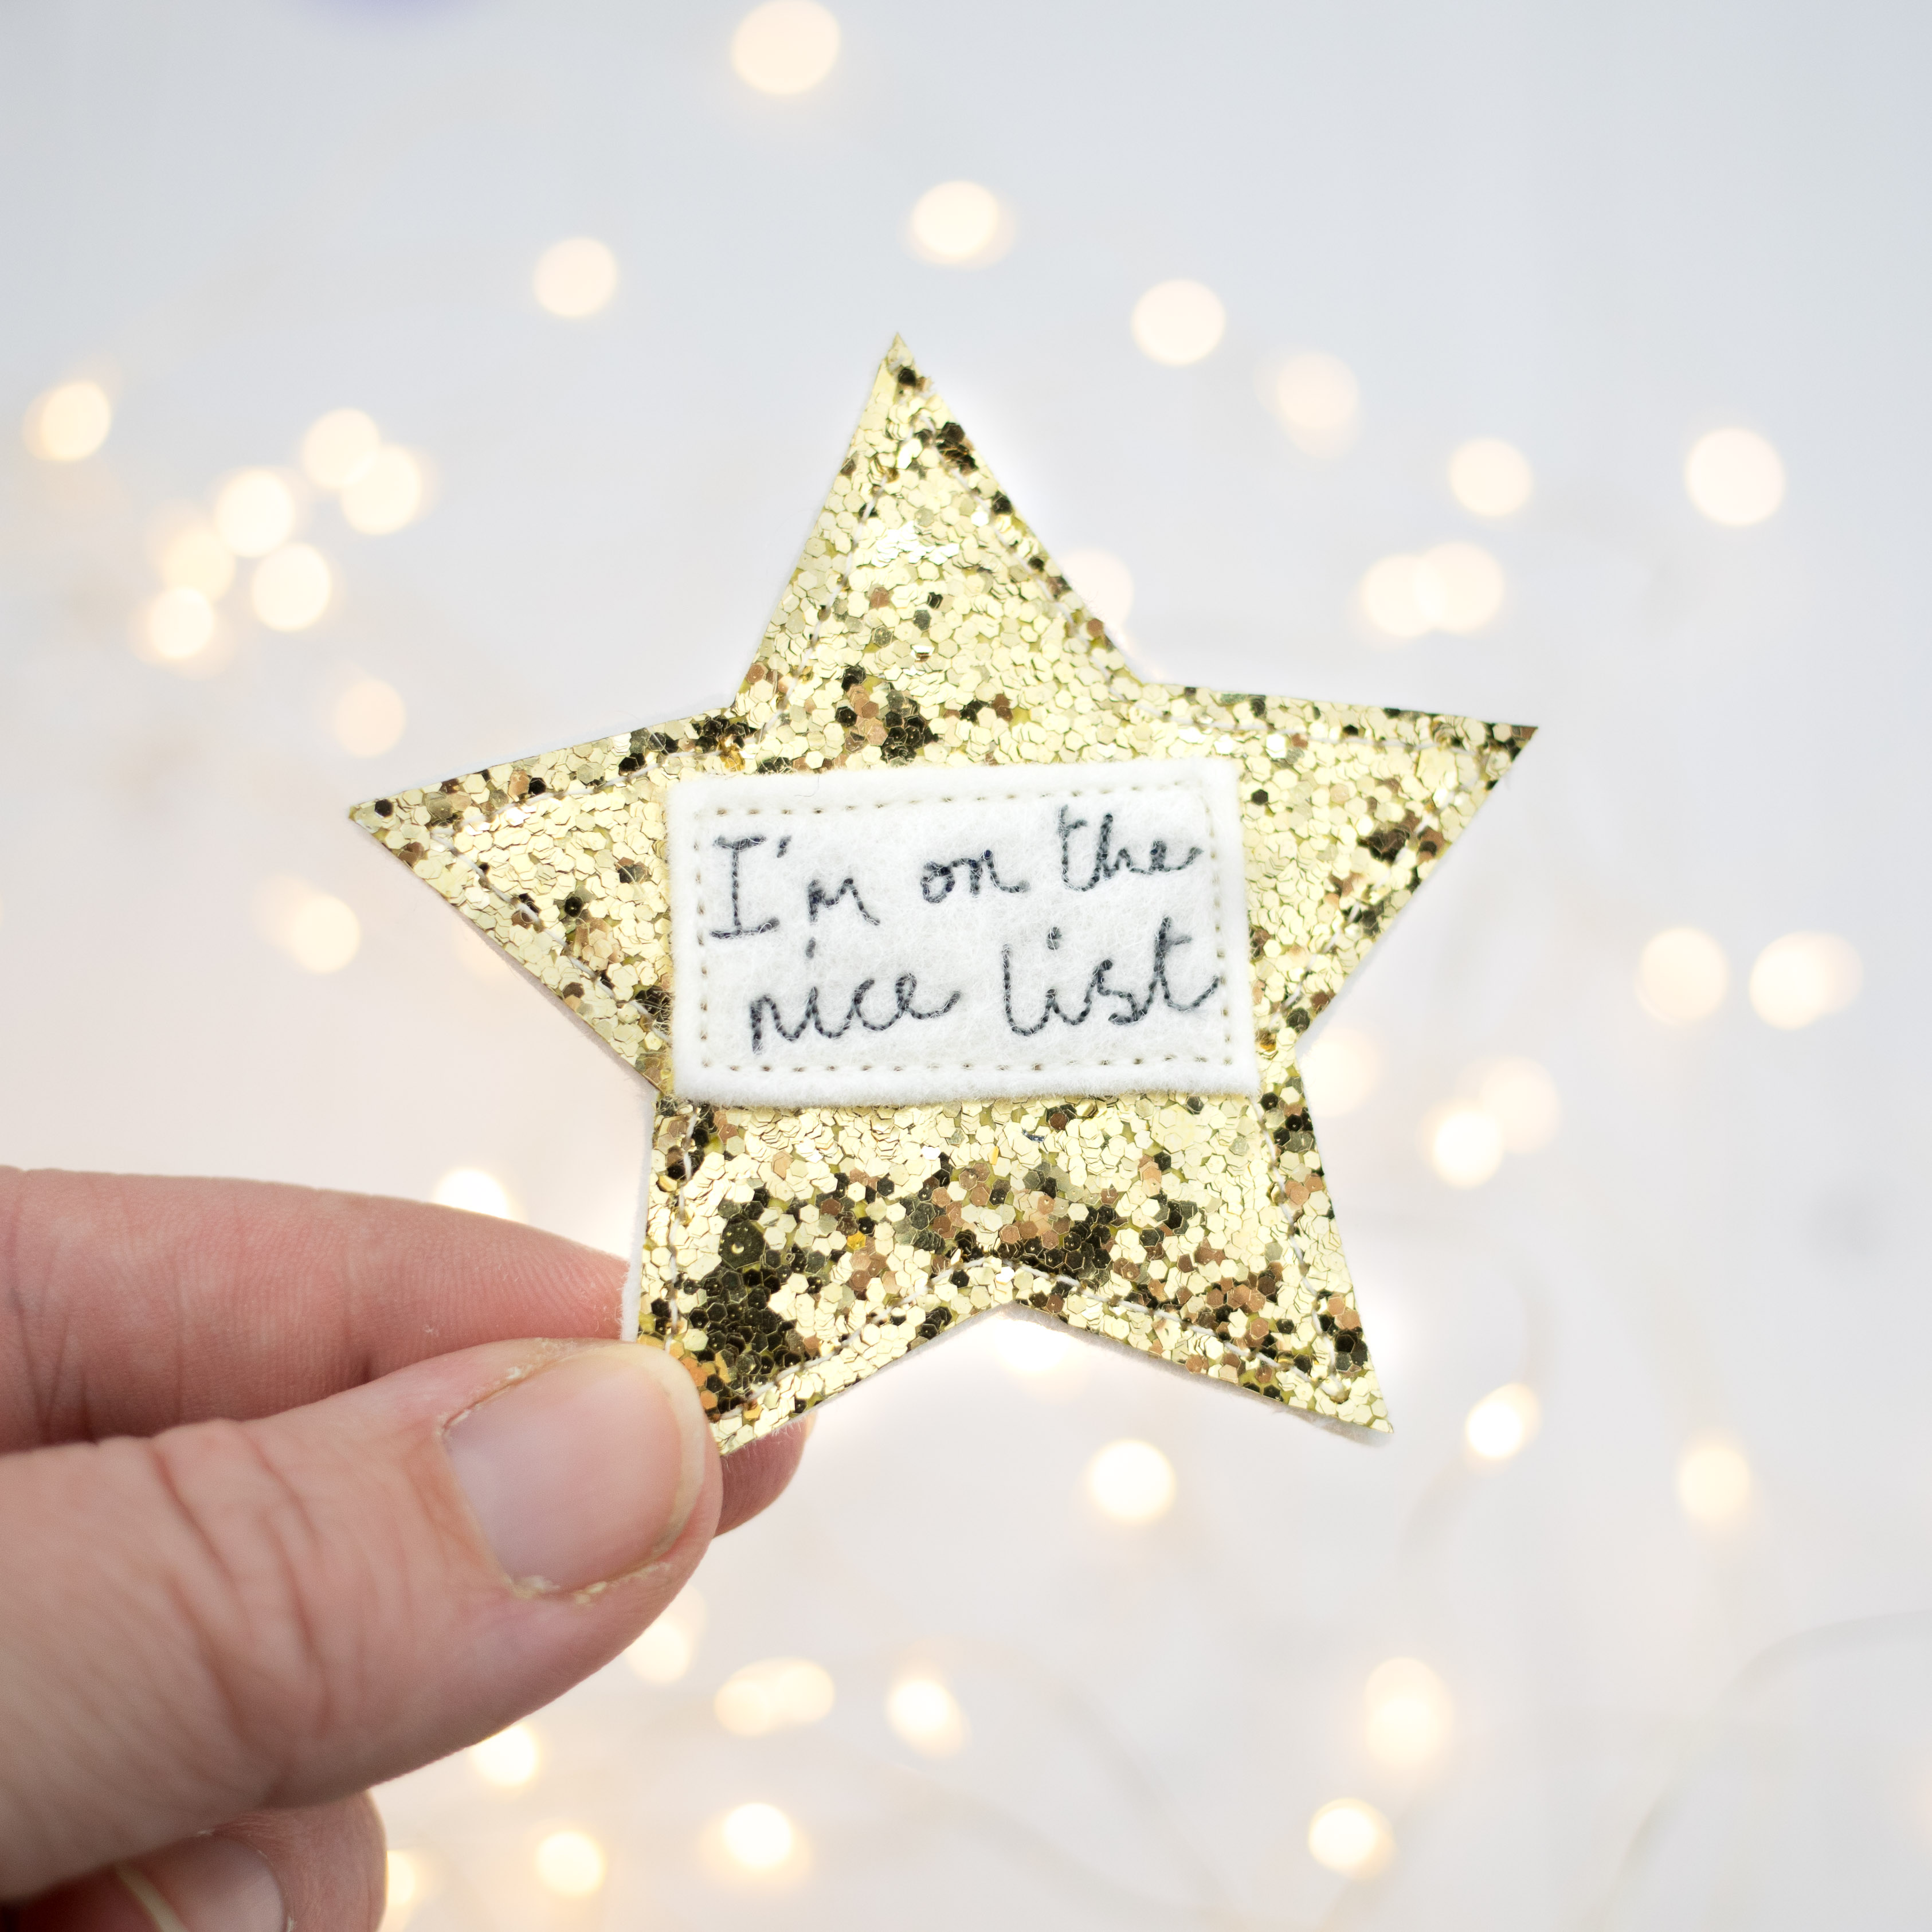 I'm on the nice list, sparkly badge.